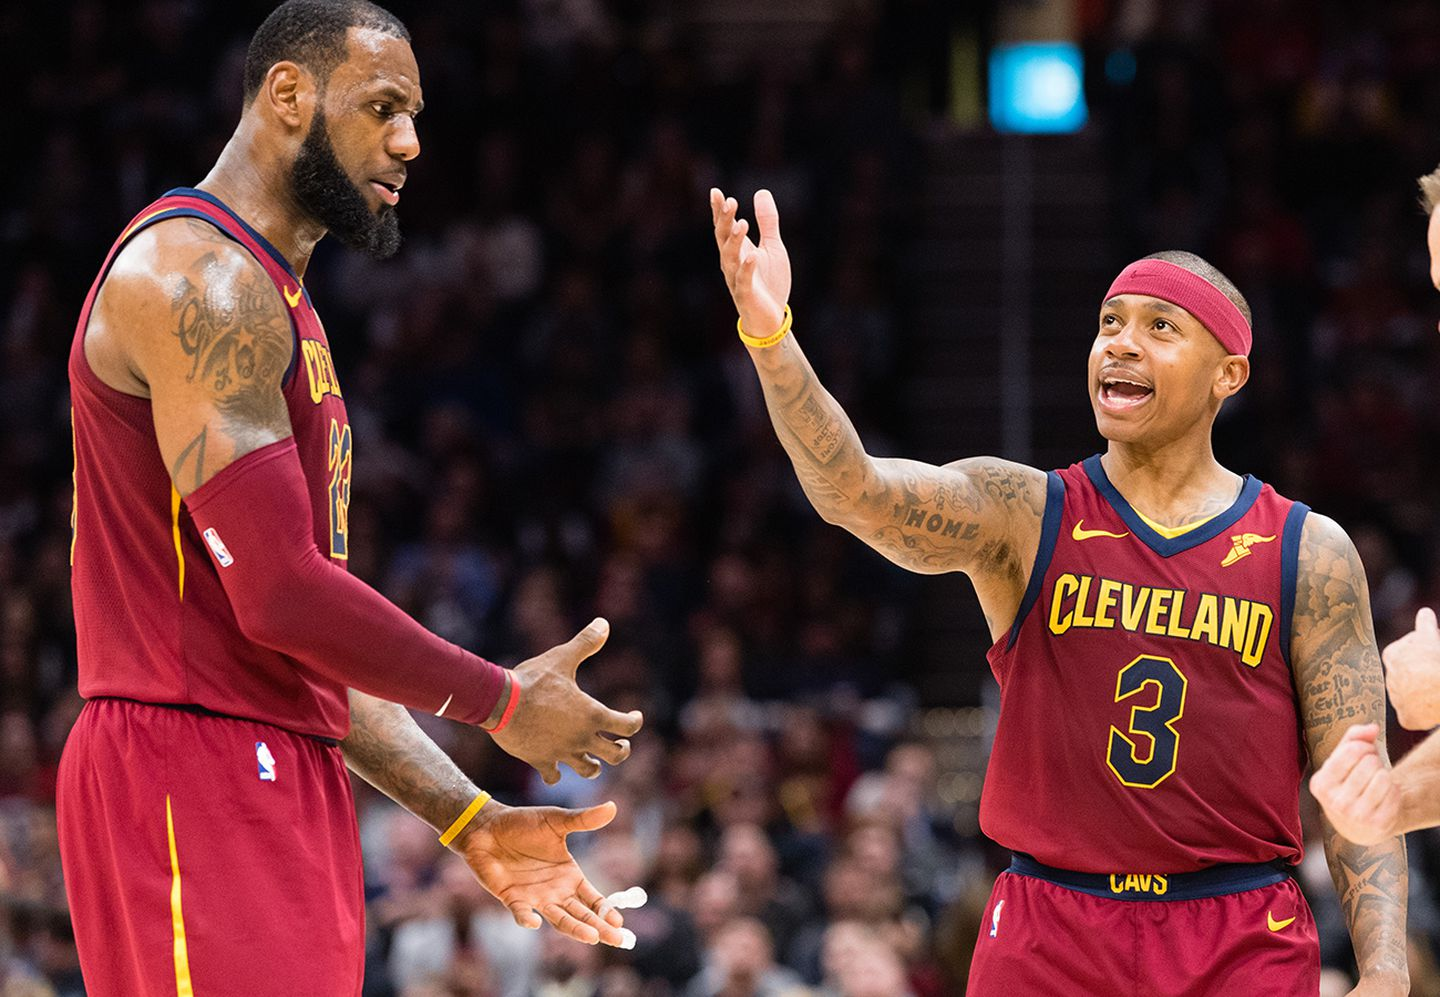 39b44cfe8f81 Things weren t working out between LeBron James (left) and Isaiah Thomas in